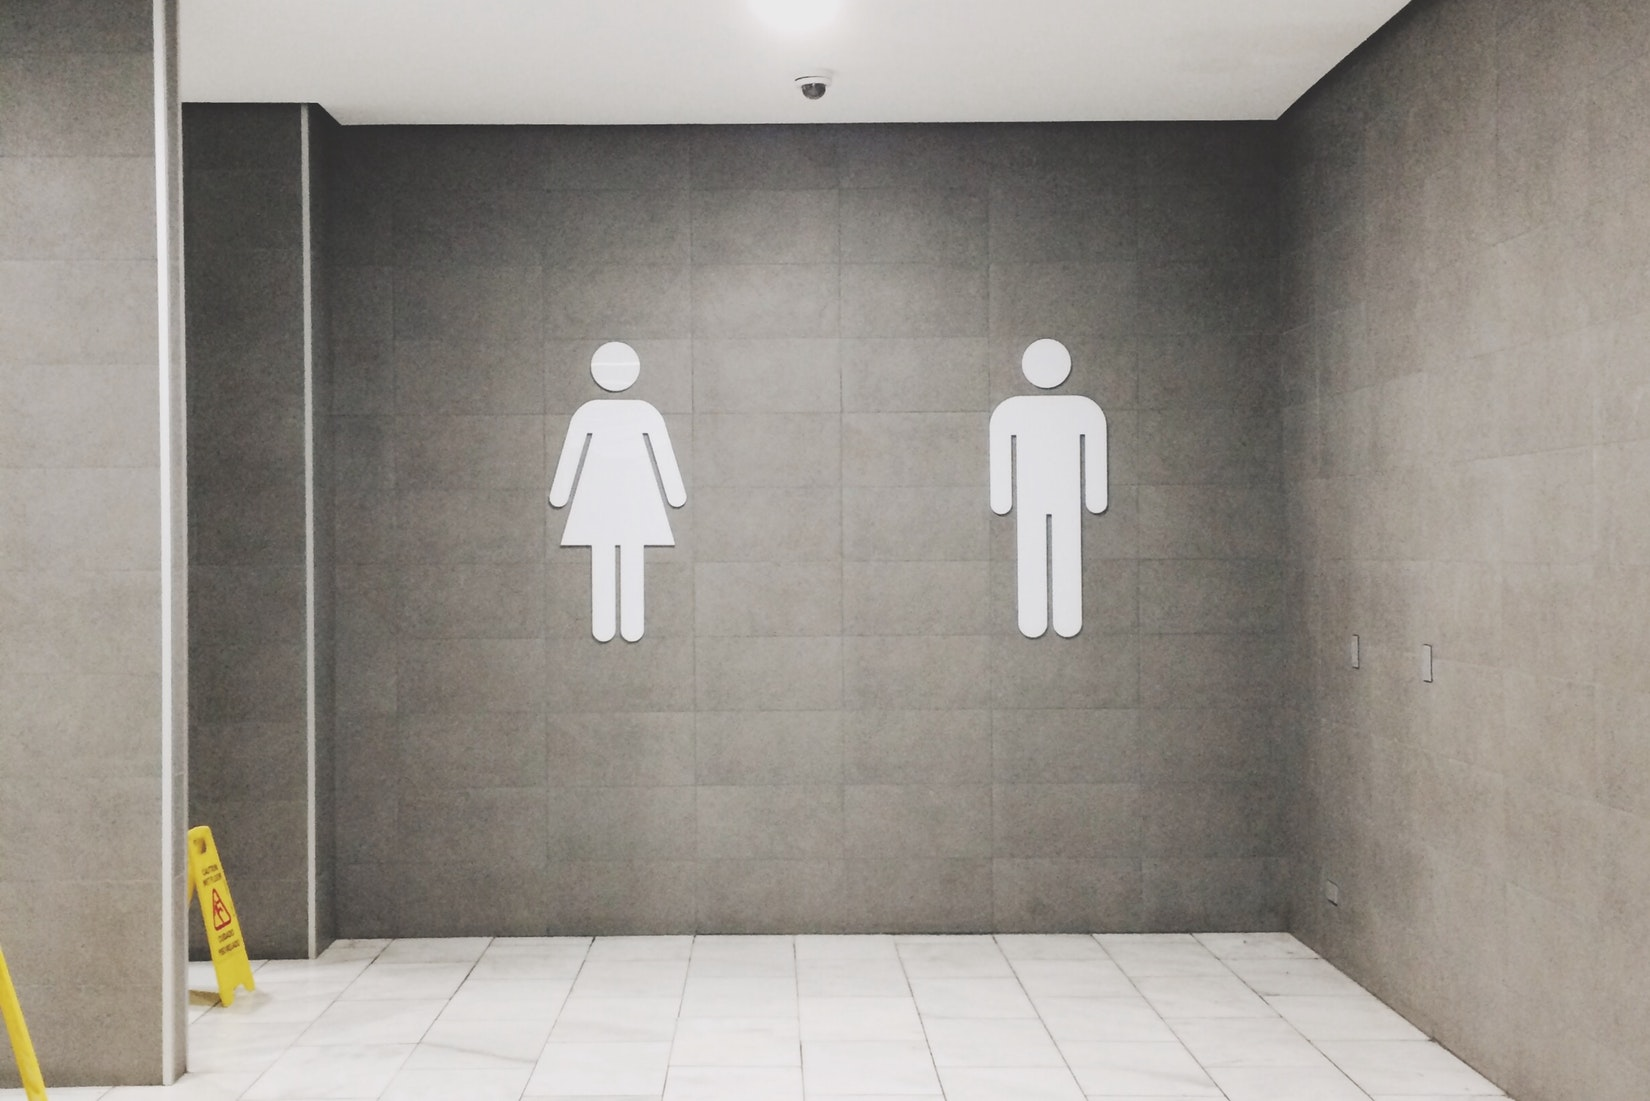 Pay-to-Pee: Public Toilets in Germany